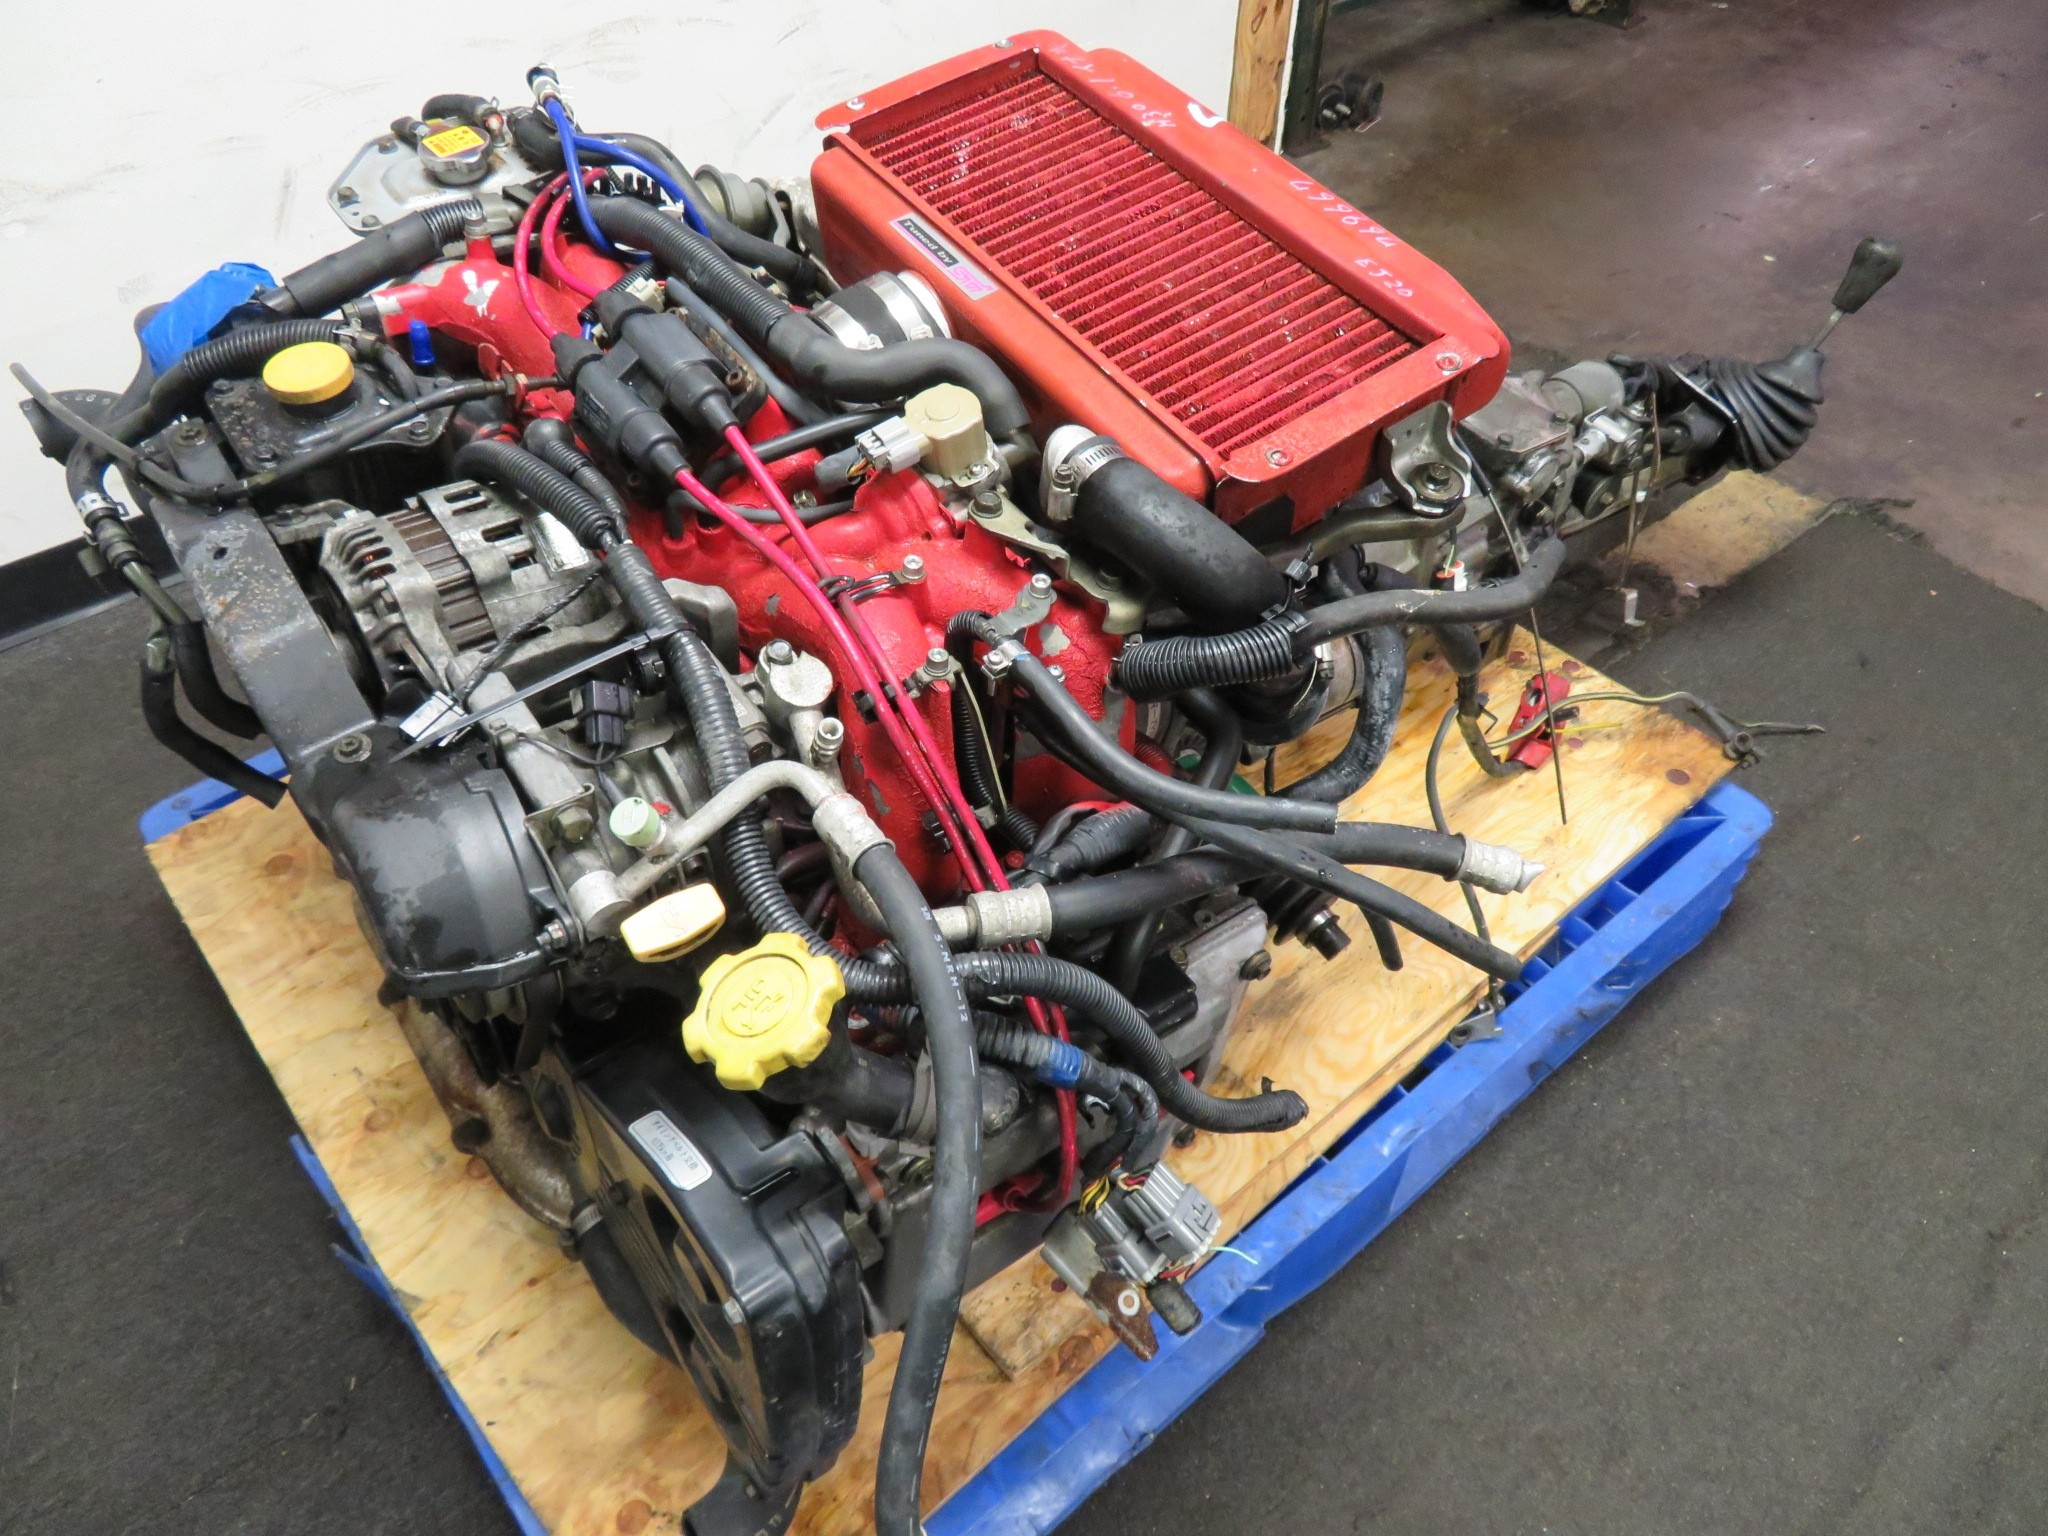 96-97 JDM GC8 SUBARU WRX STI EJ20 2.0L TURBO ENGINE, 5 SPEED TRANSMISSION, WIRING, ECU